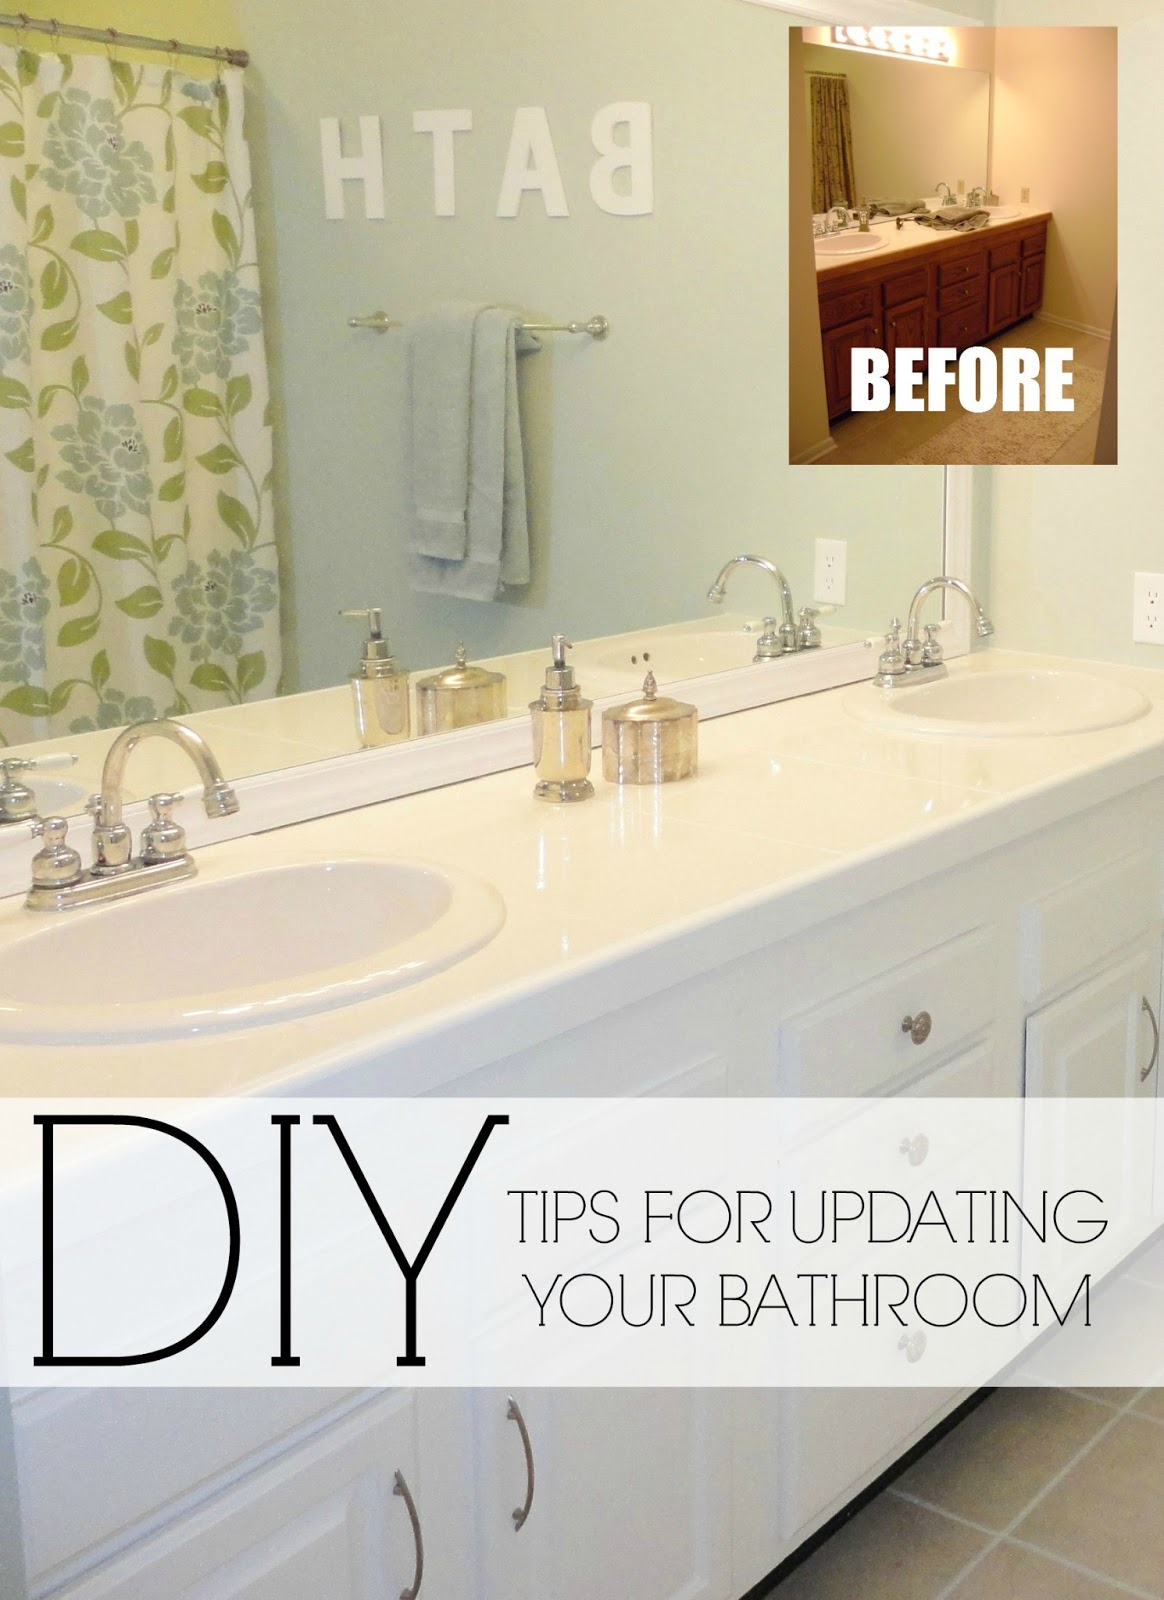 Diy Bathroom Dream Bathrooms Ideas - Remodel your bathroom yourself